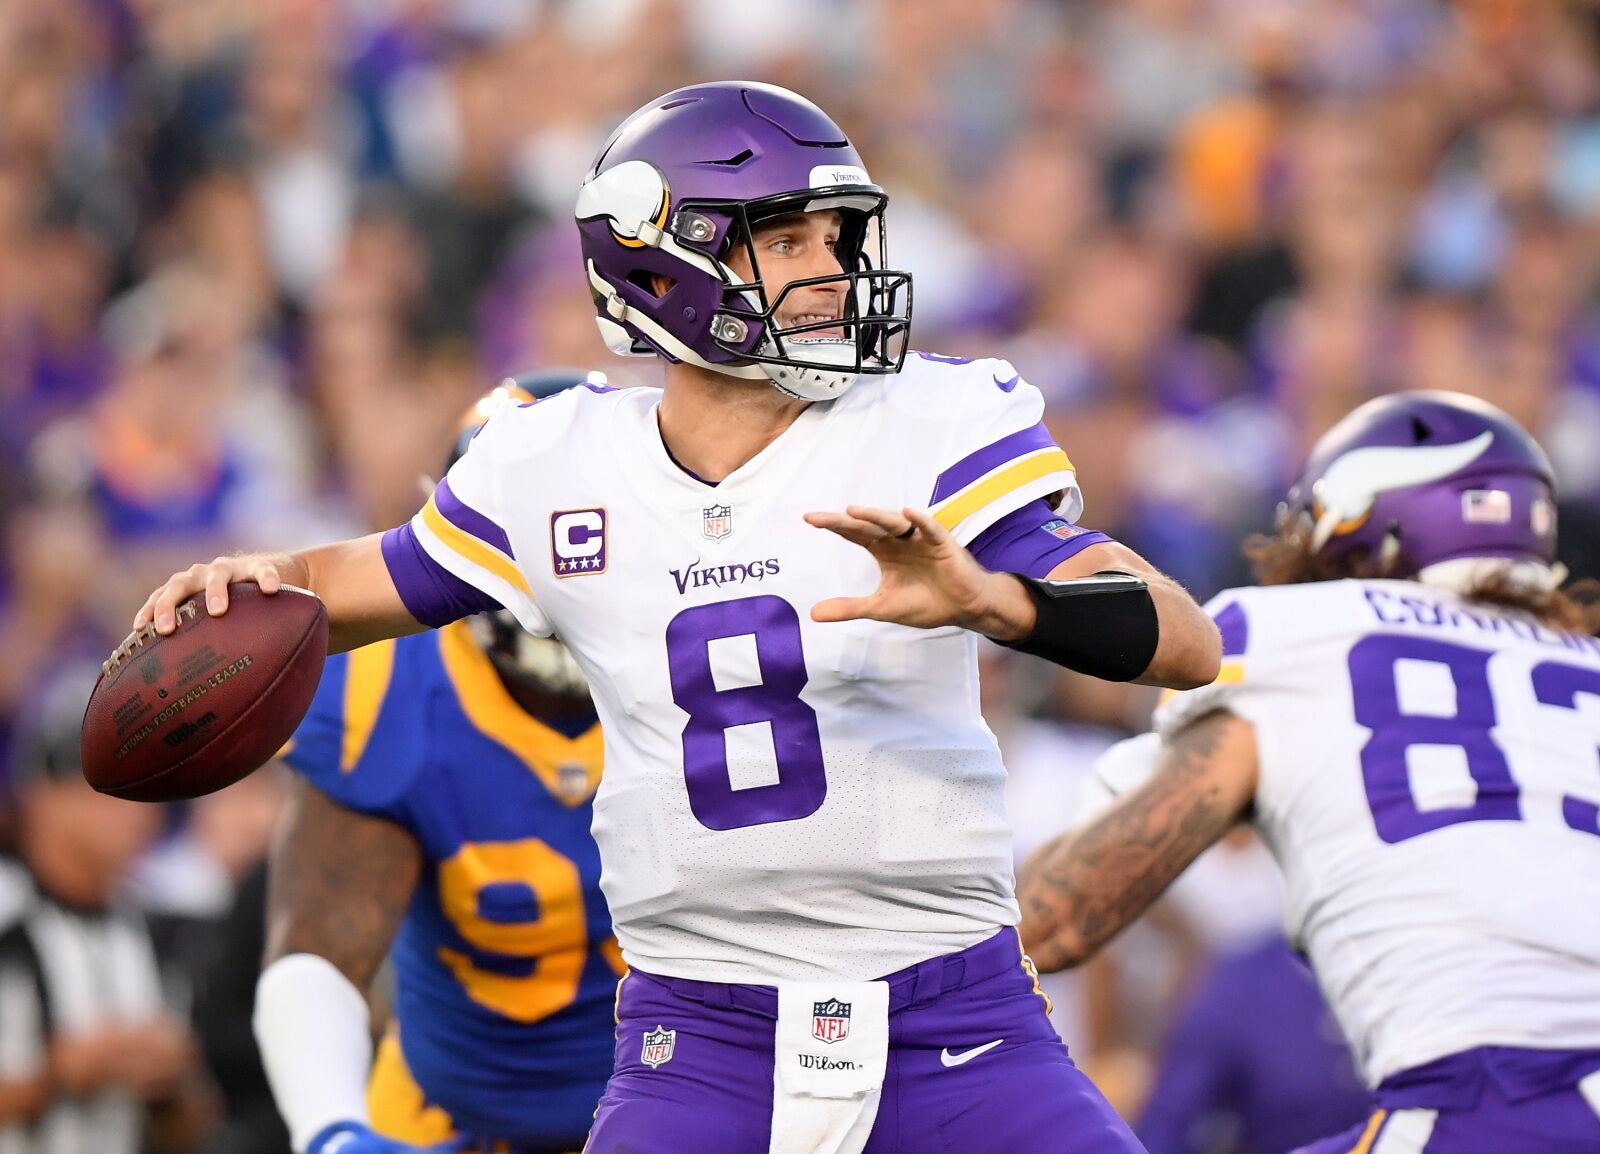 a1b9456c Former NFL quarterback says Kirk Cousins will be 'a lot better' in 2019